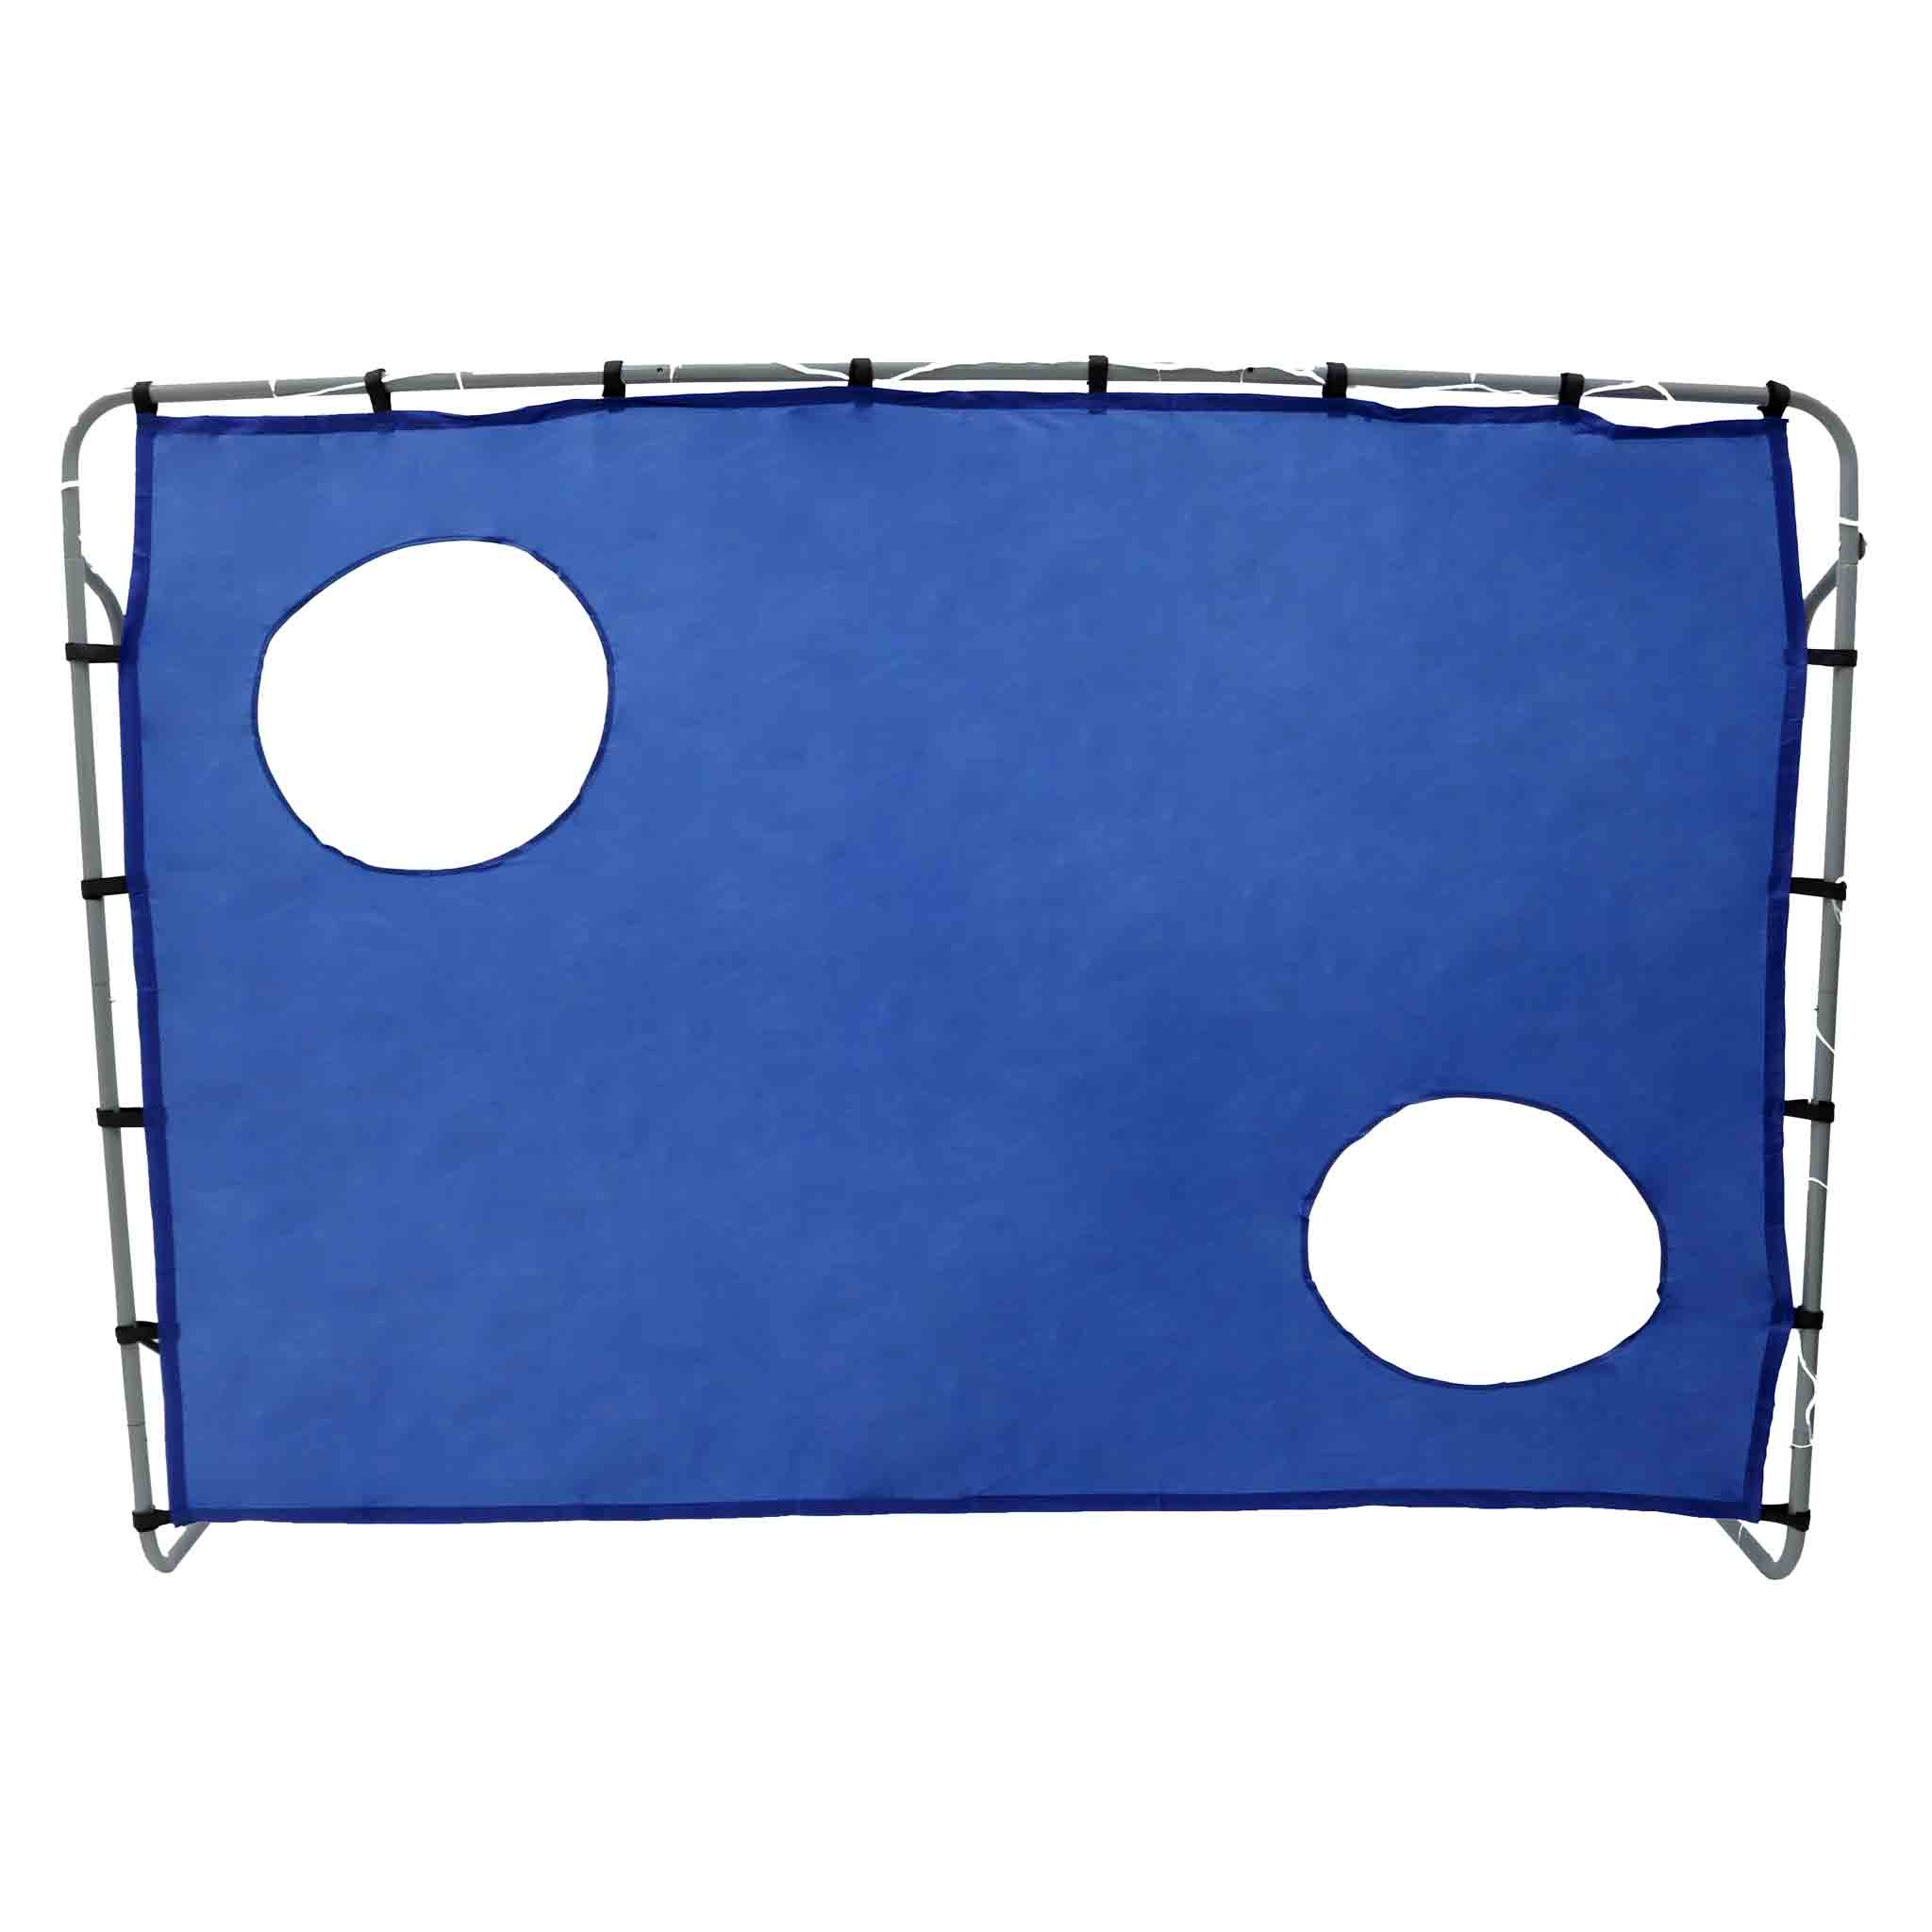 2-in-1 Football Goal with Target Shooting Practice Net 7ft x 5ft